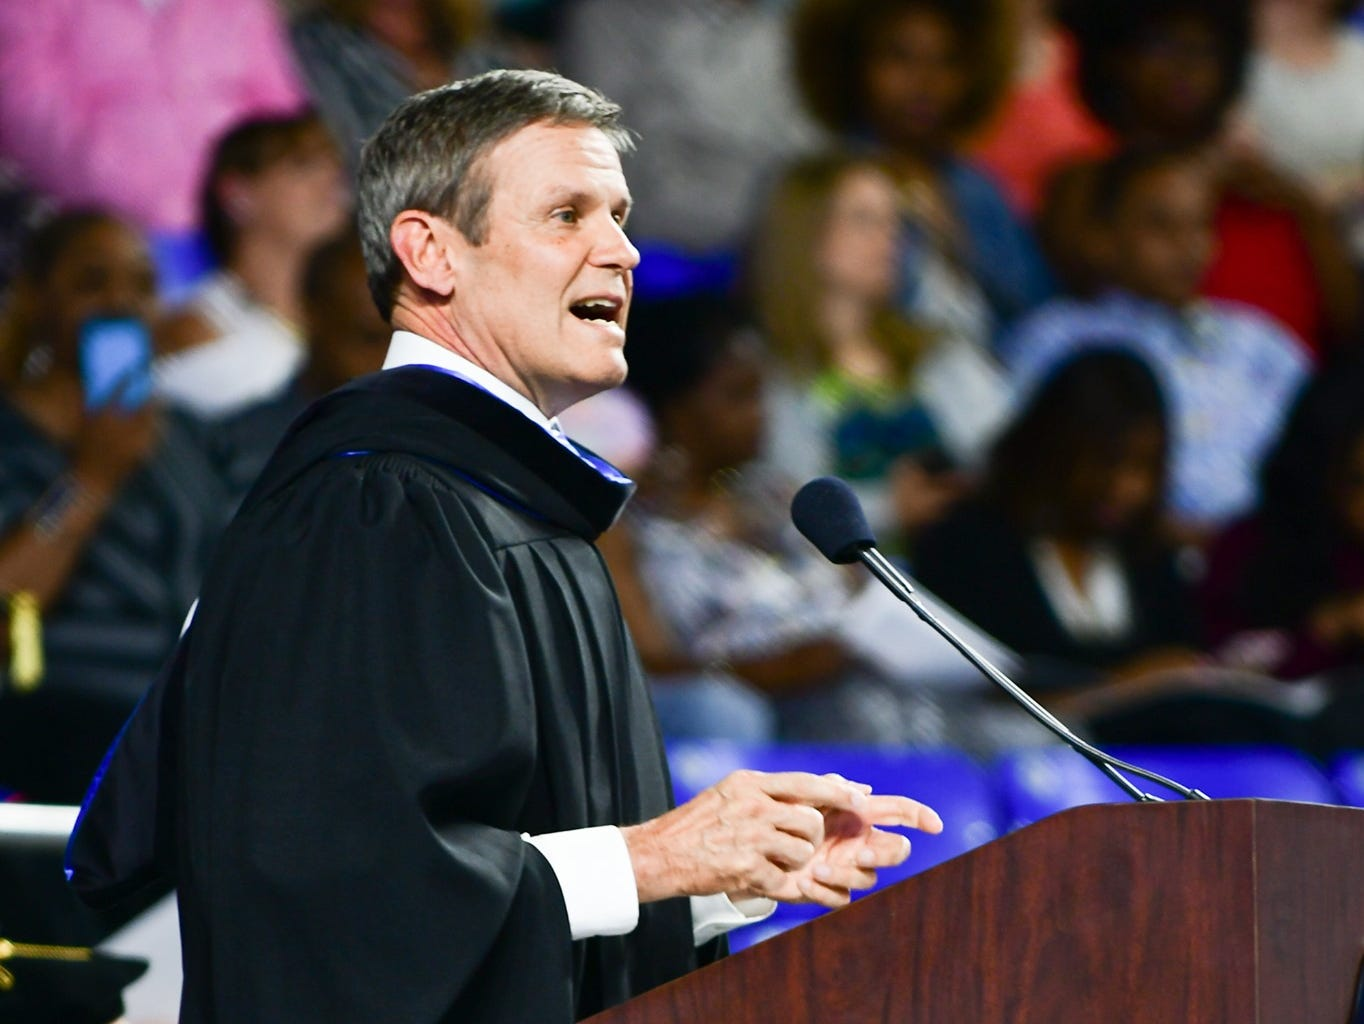 Tennessee Gov. Bill Lee was the keynote speaker for the afternoon undergraduate ceremony at MTSU on Saturday, May 4, 2019.